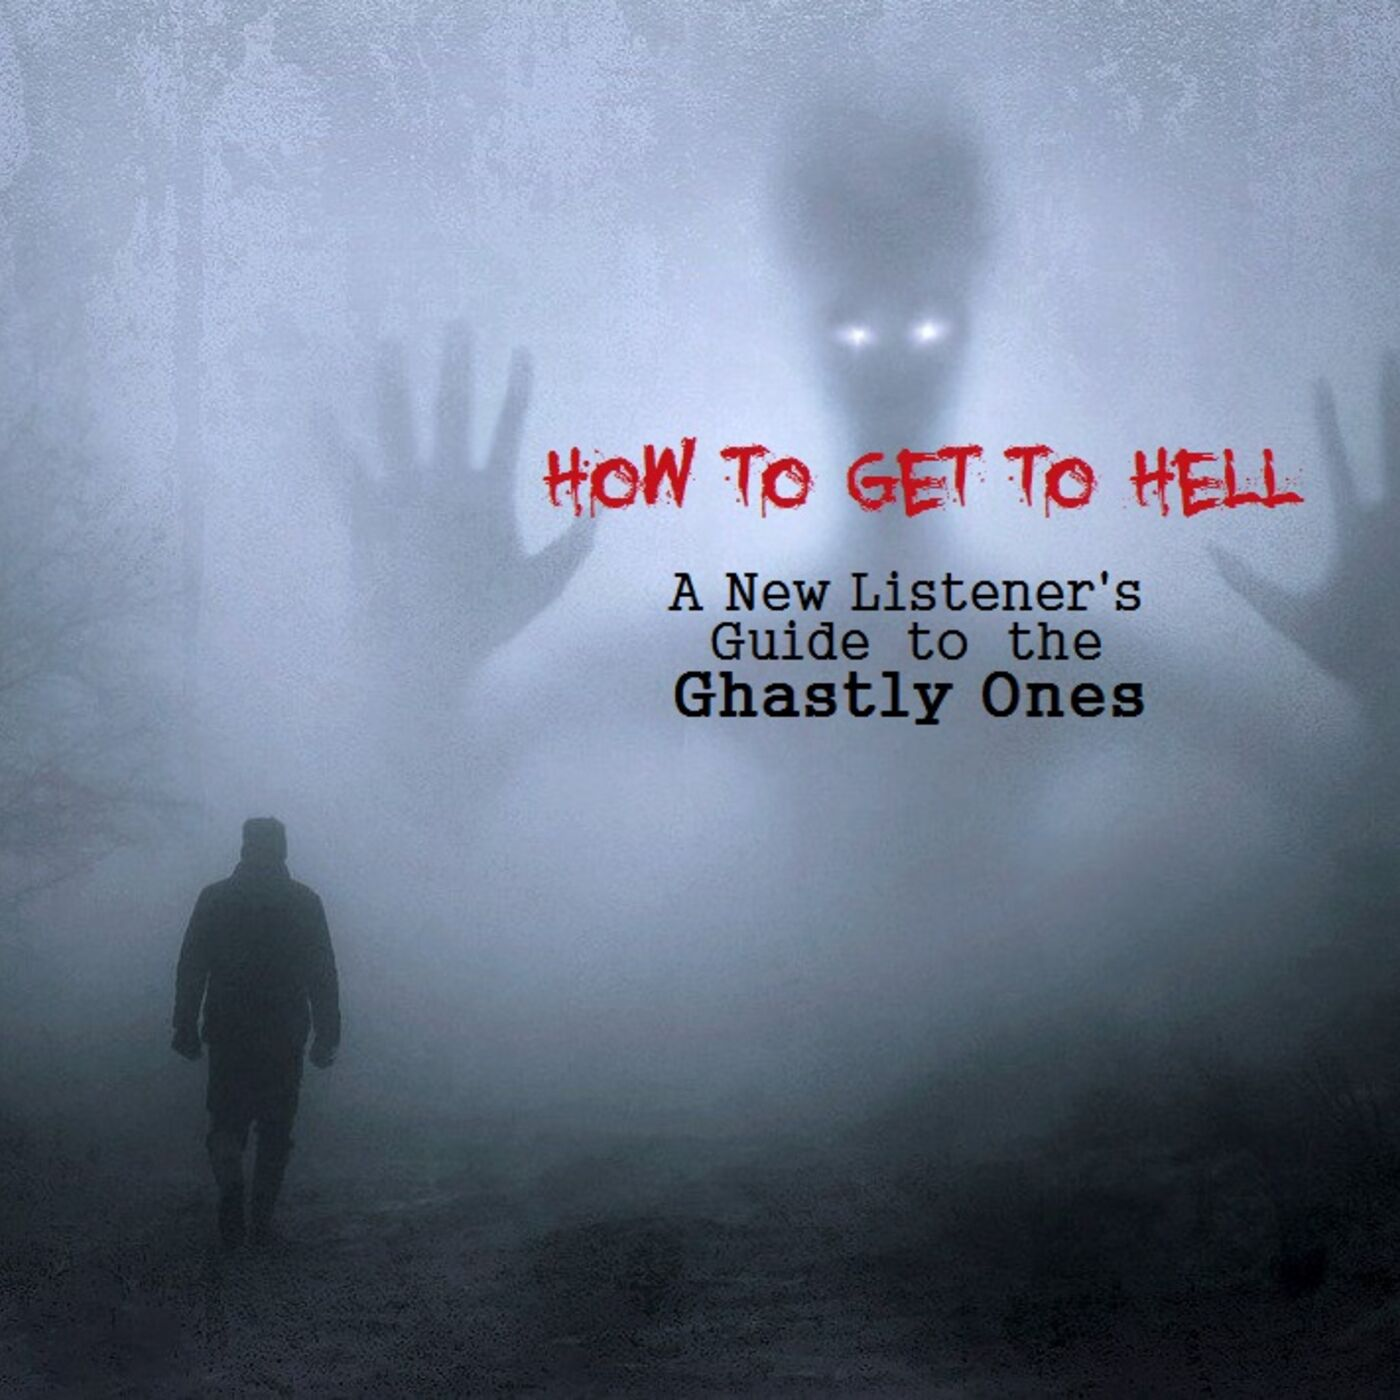 New Listener's Guide to the Ghastly Ones